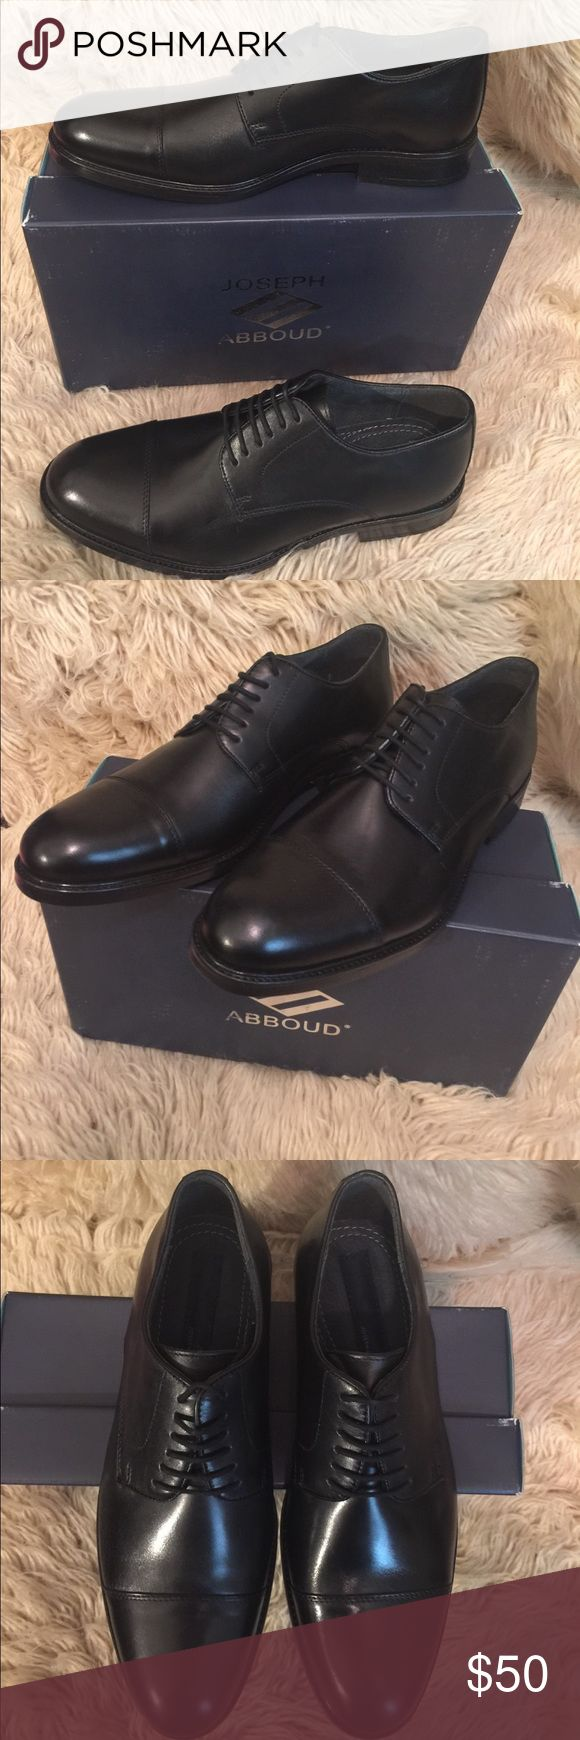 JOSEPH ABBOUD (Rosen) Leather Men's Dress Shoes Black JOSEPH ABBOUD (Rosen) Leather Men's Dress Shoes, size 10.  Leather upper with leather interior lining.  Cushioned footbed.  Rubber outsole w/ welting.  Fits true to size. Joseph Abboud Shoes Oxfords & Derbys